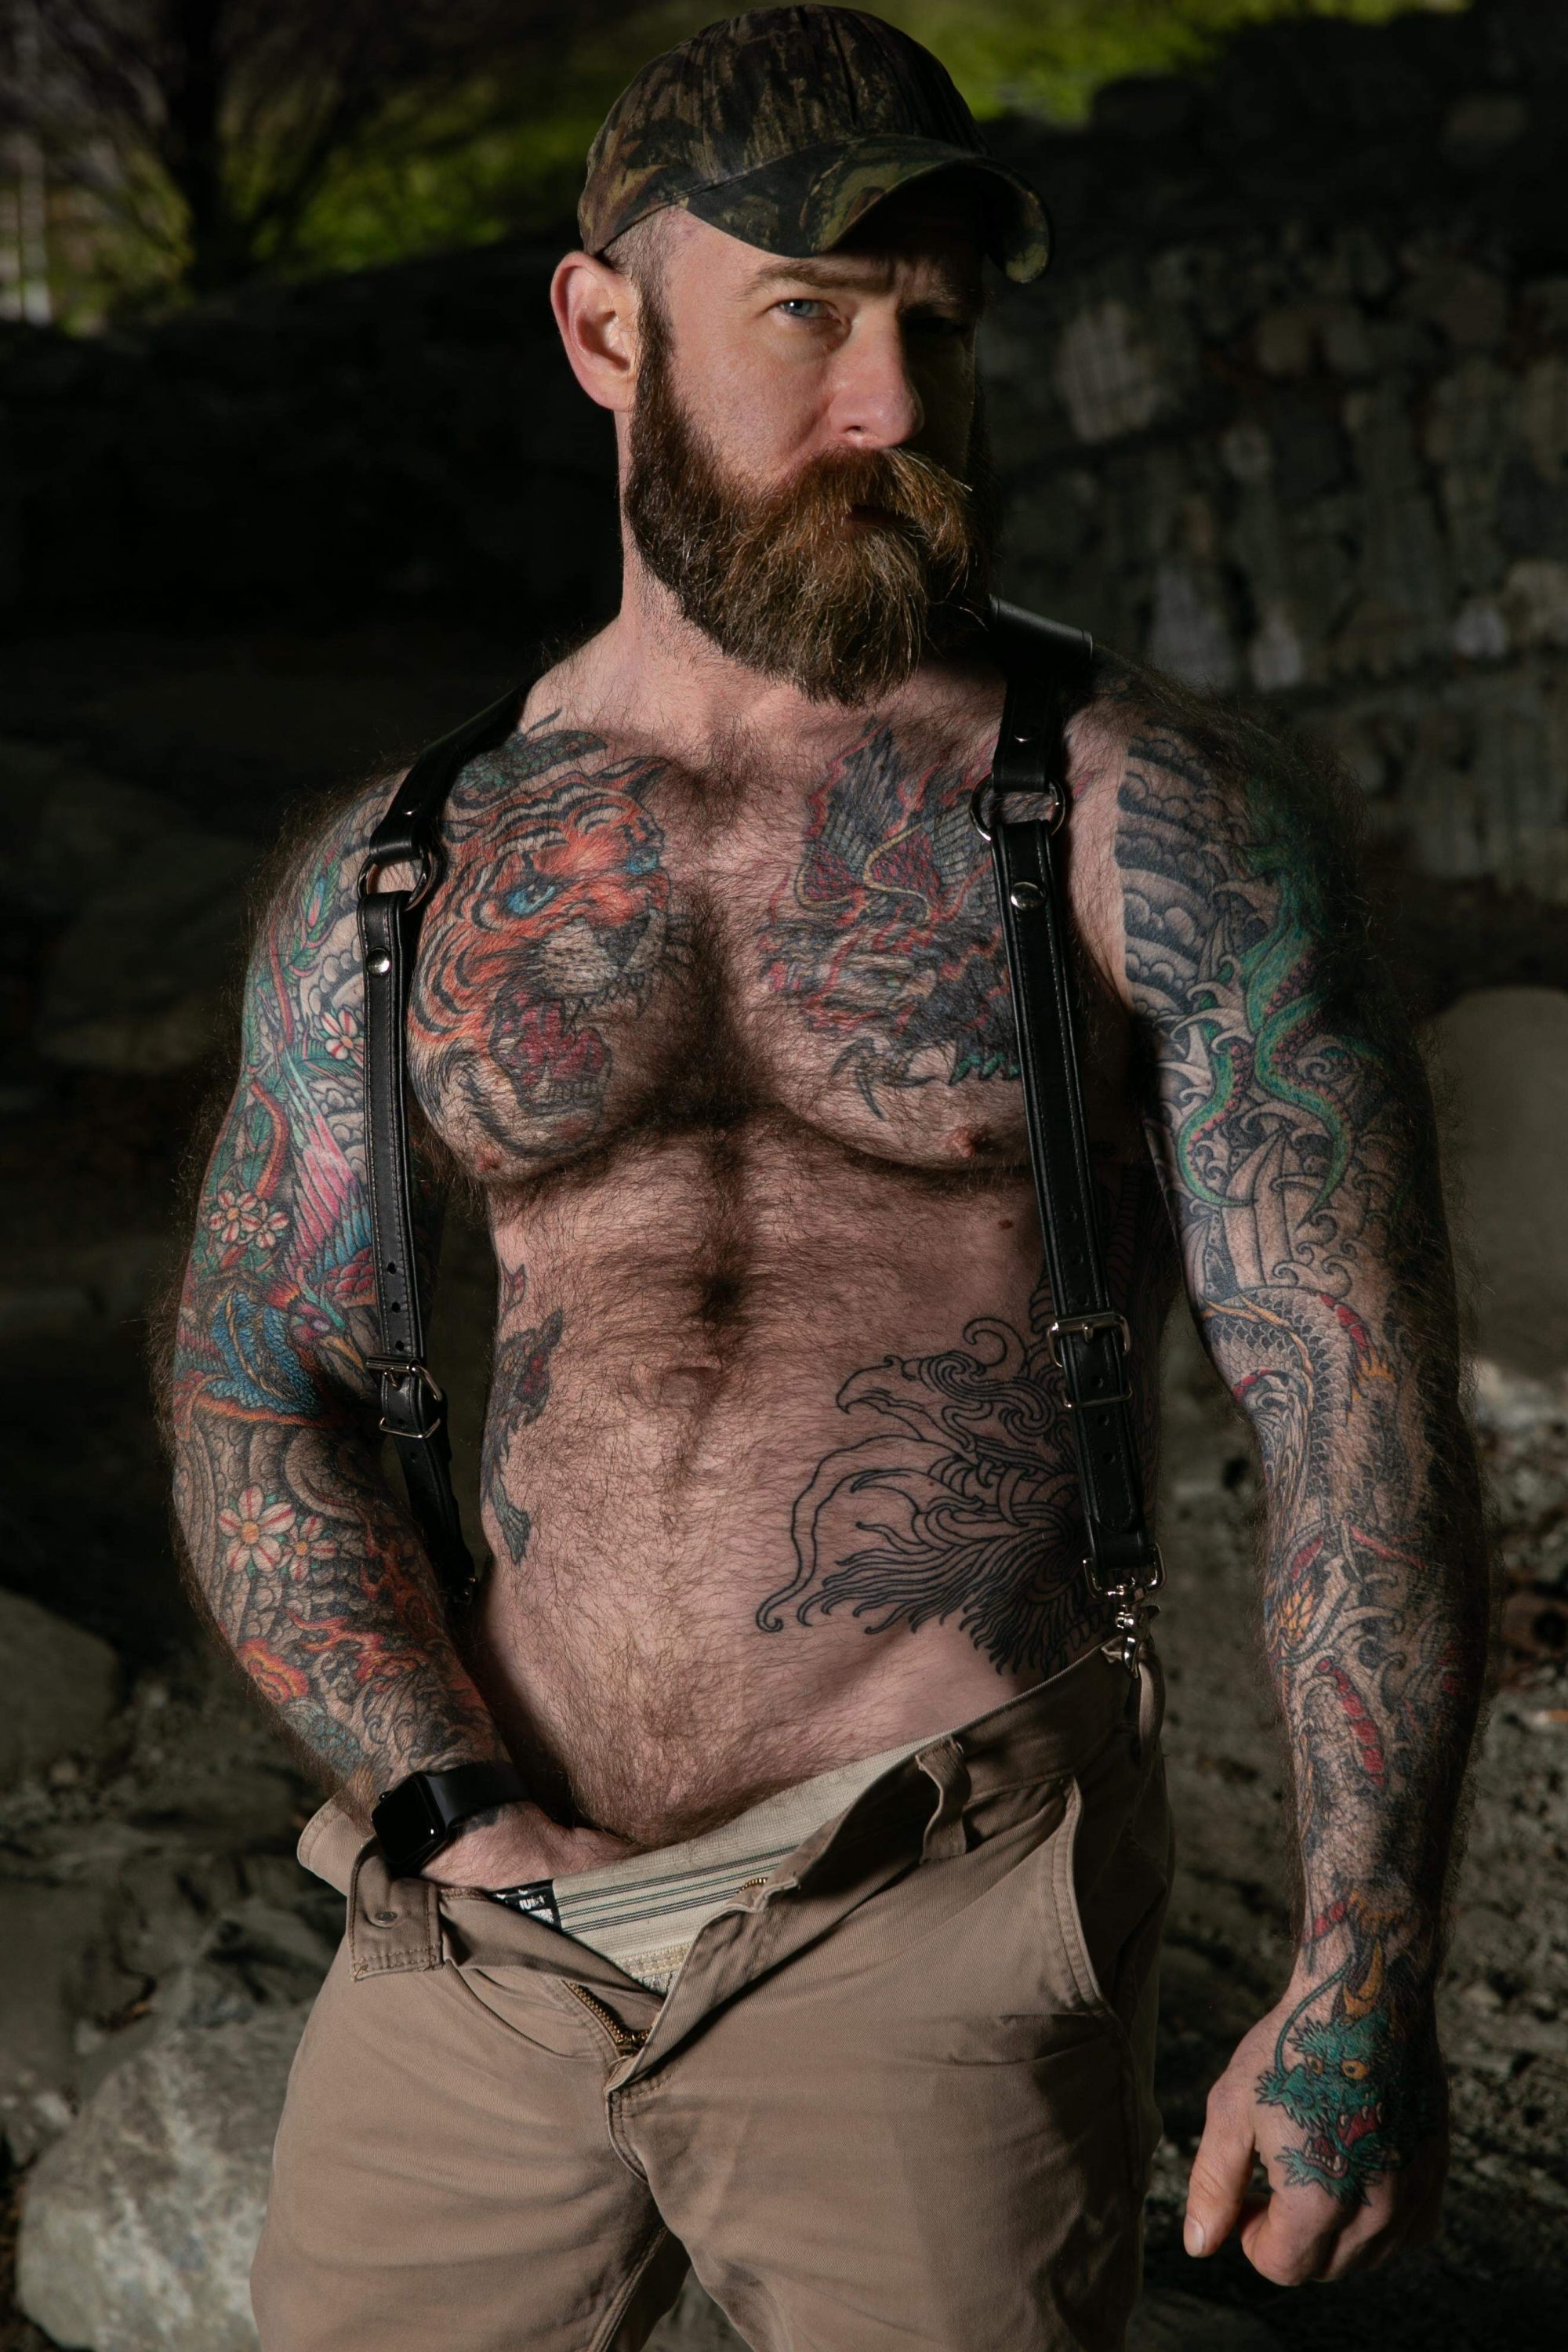 Bearded Porn Tumblr jack dixon - adult entertainer & porn star - xxx